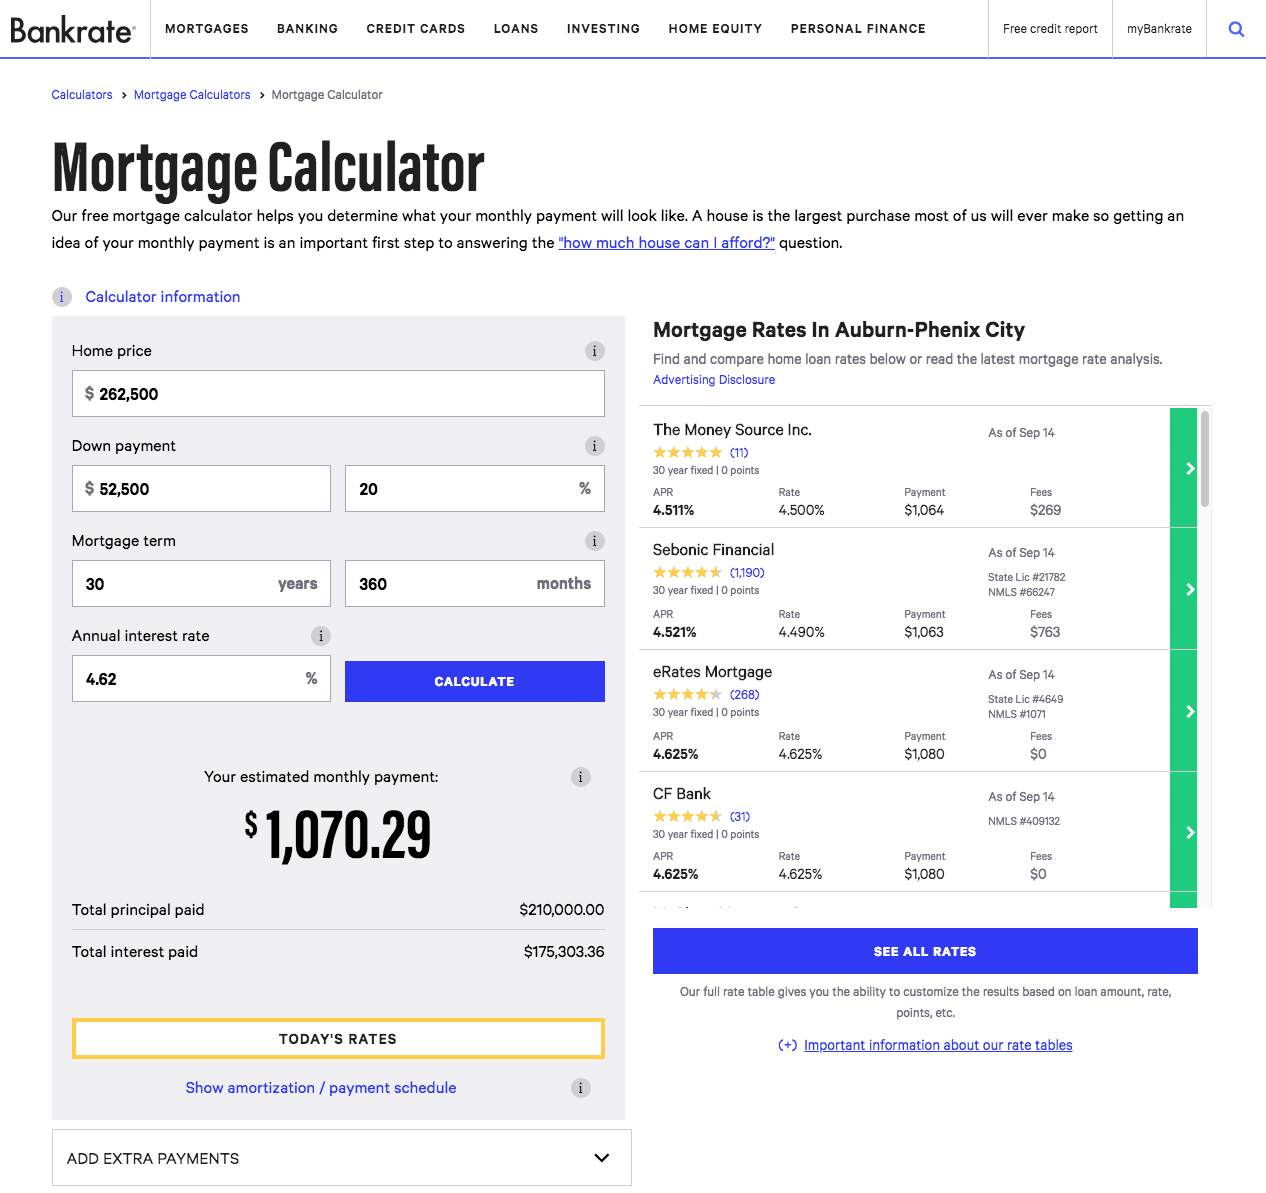 Bankrate.com screenshot of mortgage calculator showing helpful default values